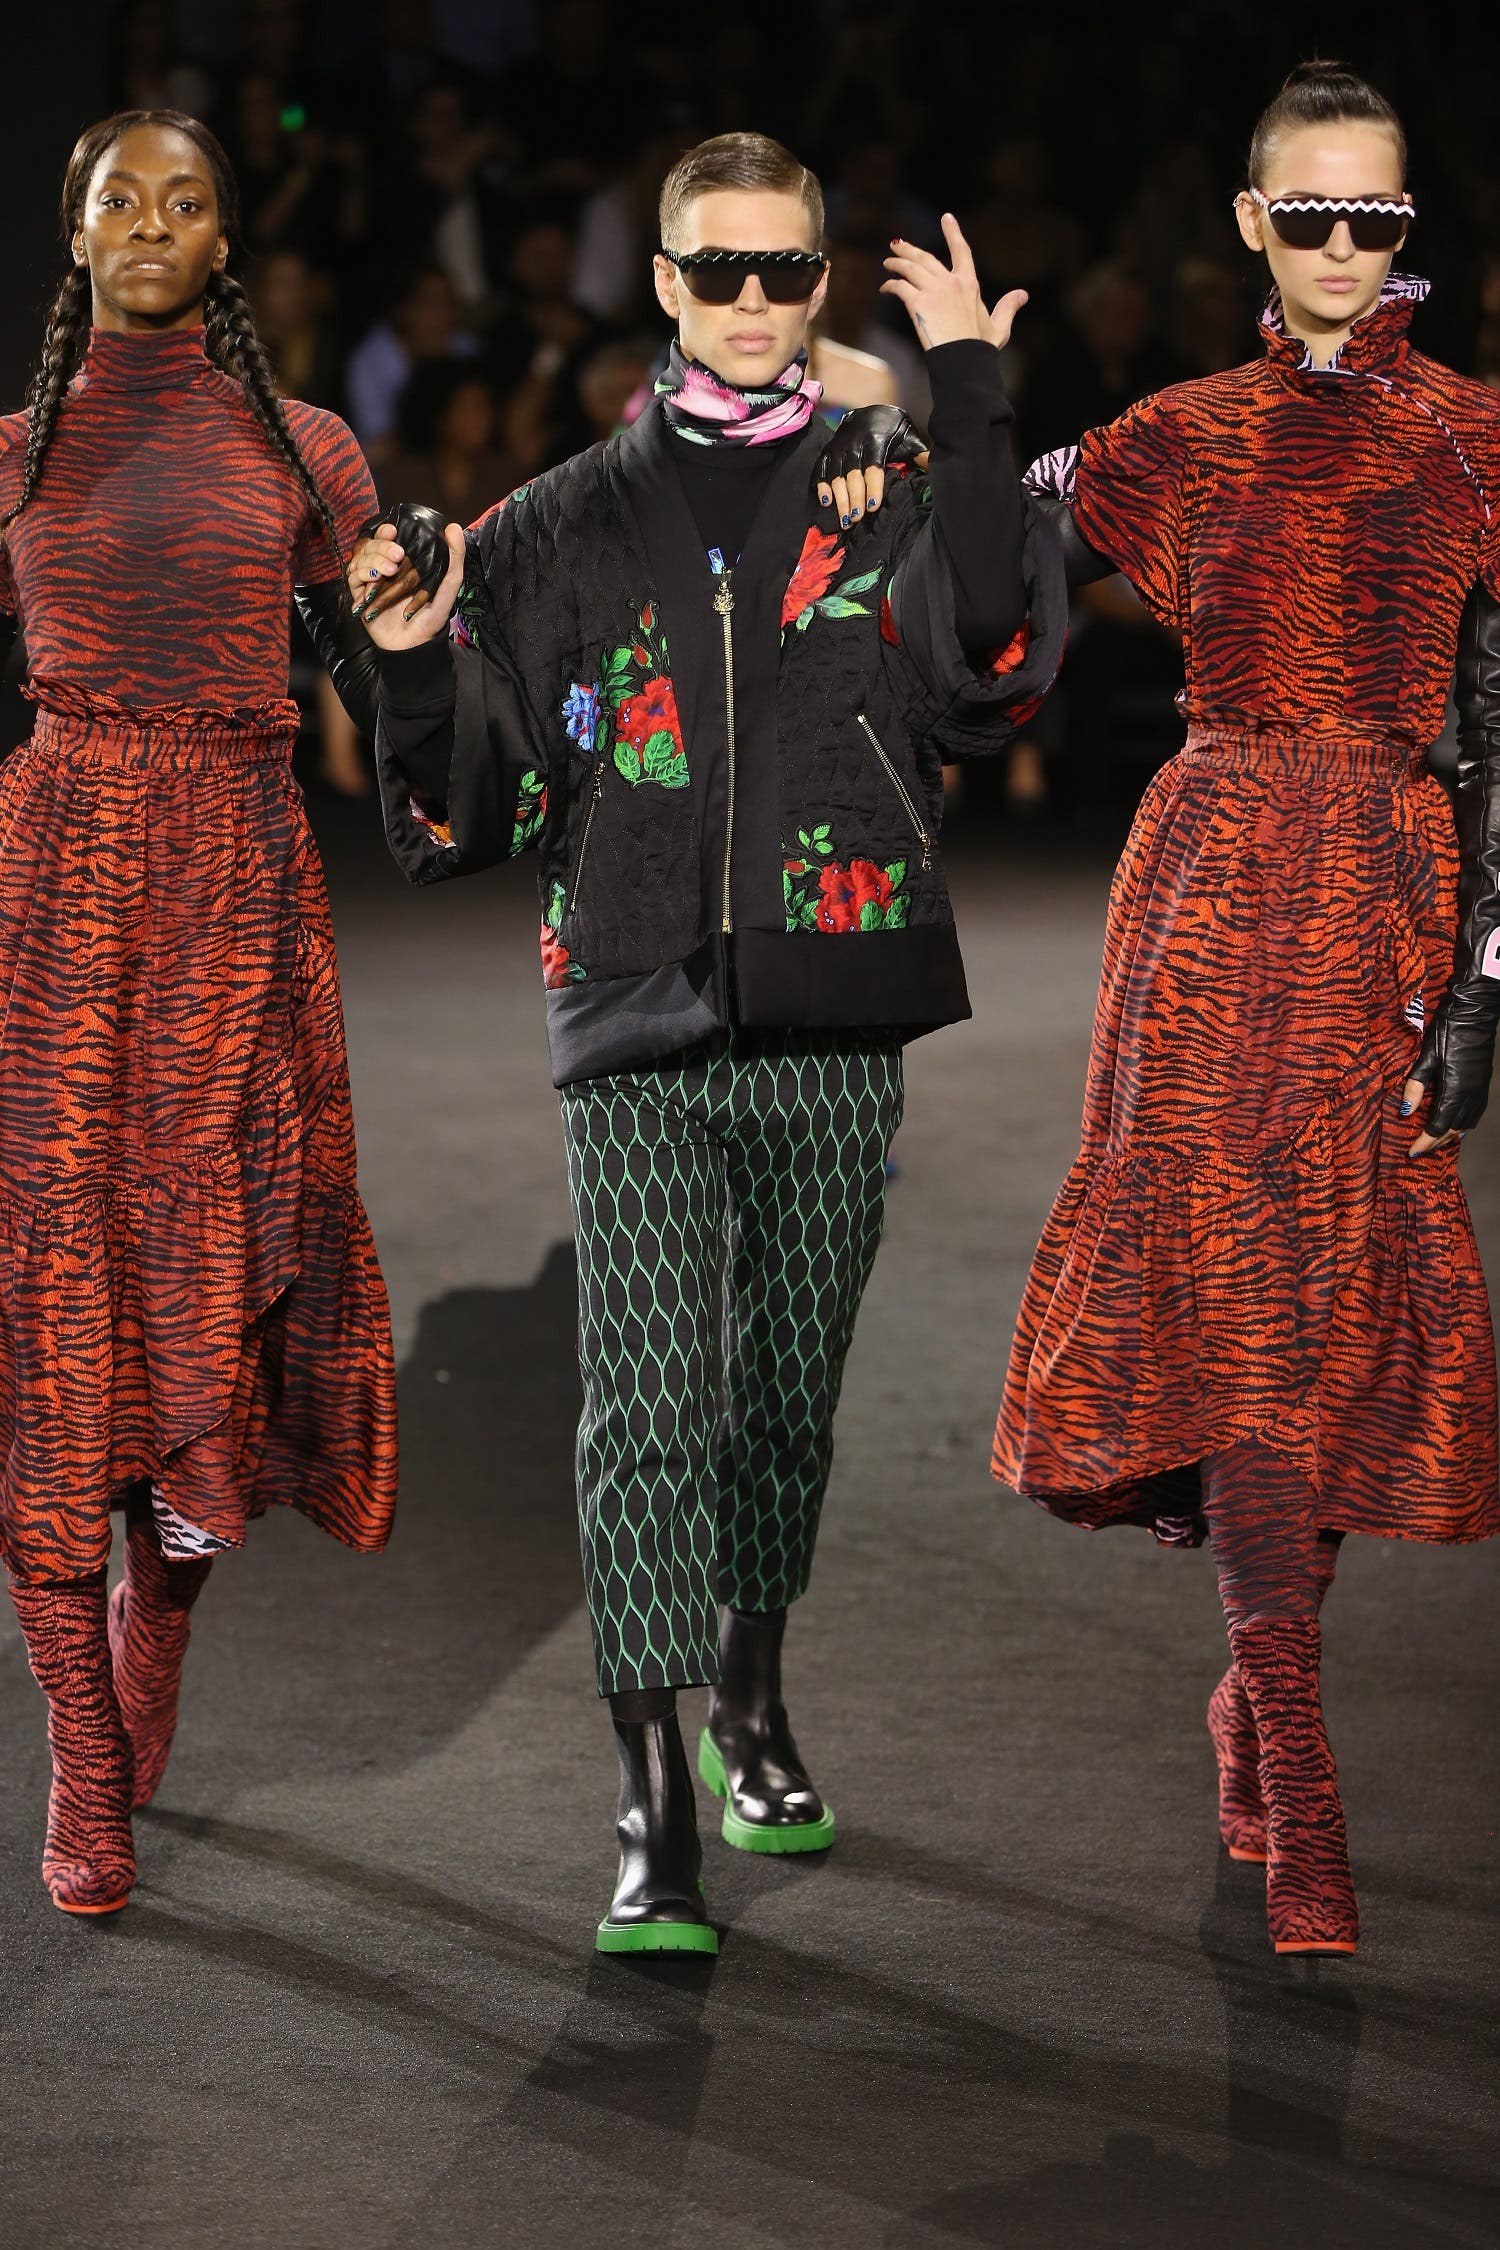 Performers and models take the runway during KENZO x H&M Launch Event Directed By Jean-Paul Goude' at Pier 36 on October 19, 2016 in New York City. Nicholas Hunt/Getty Images for H&M/AFP Nicholas Hunt / GETTY IMAGES NORTH AMERICA / AFP